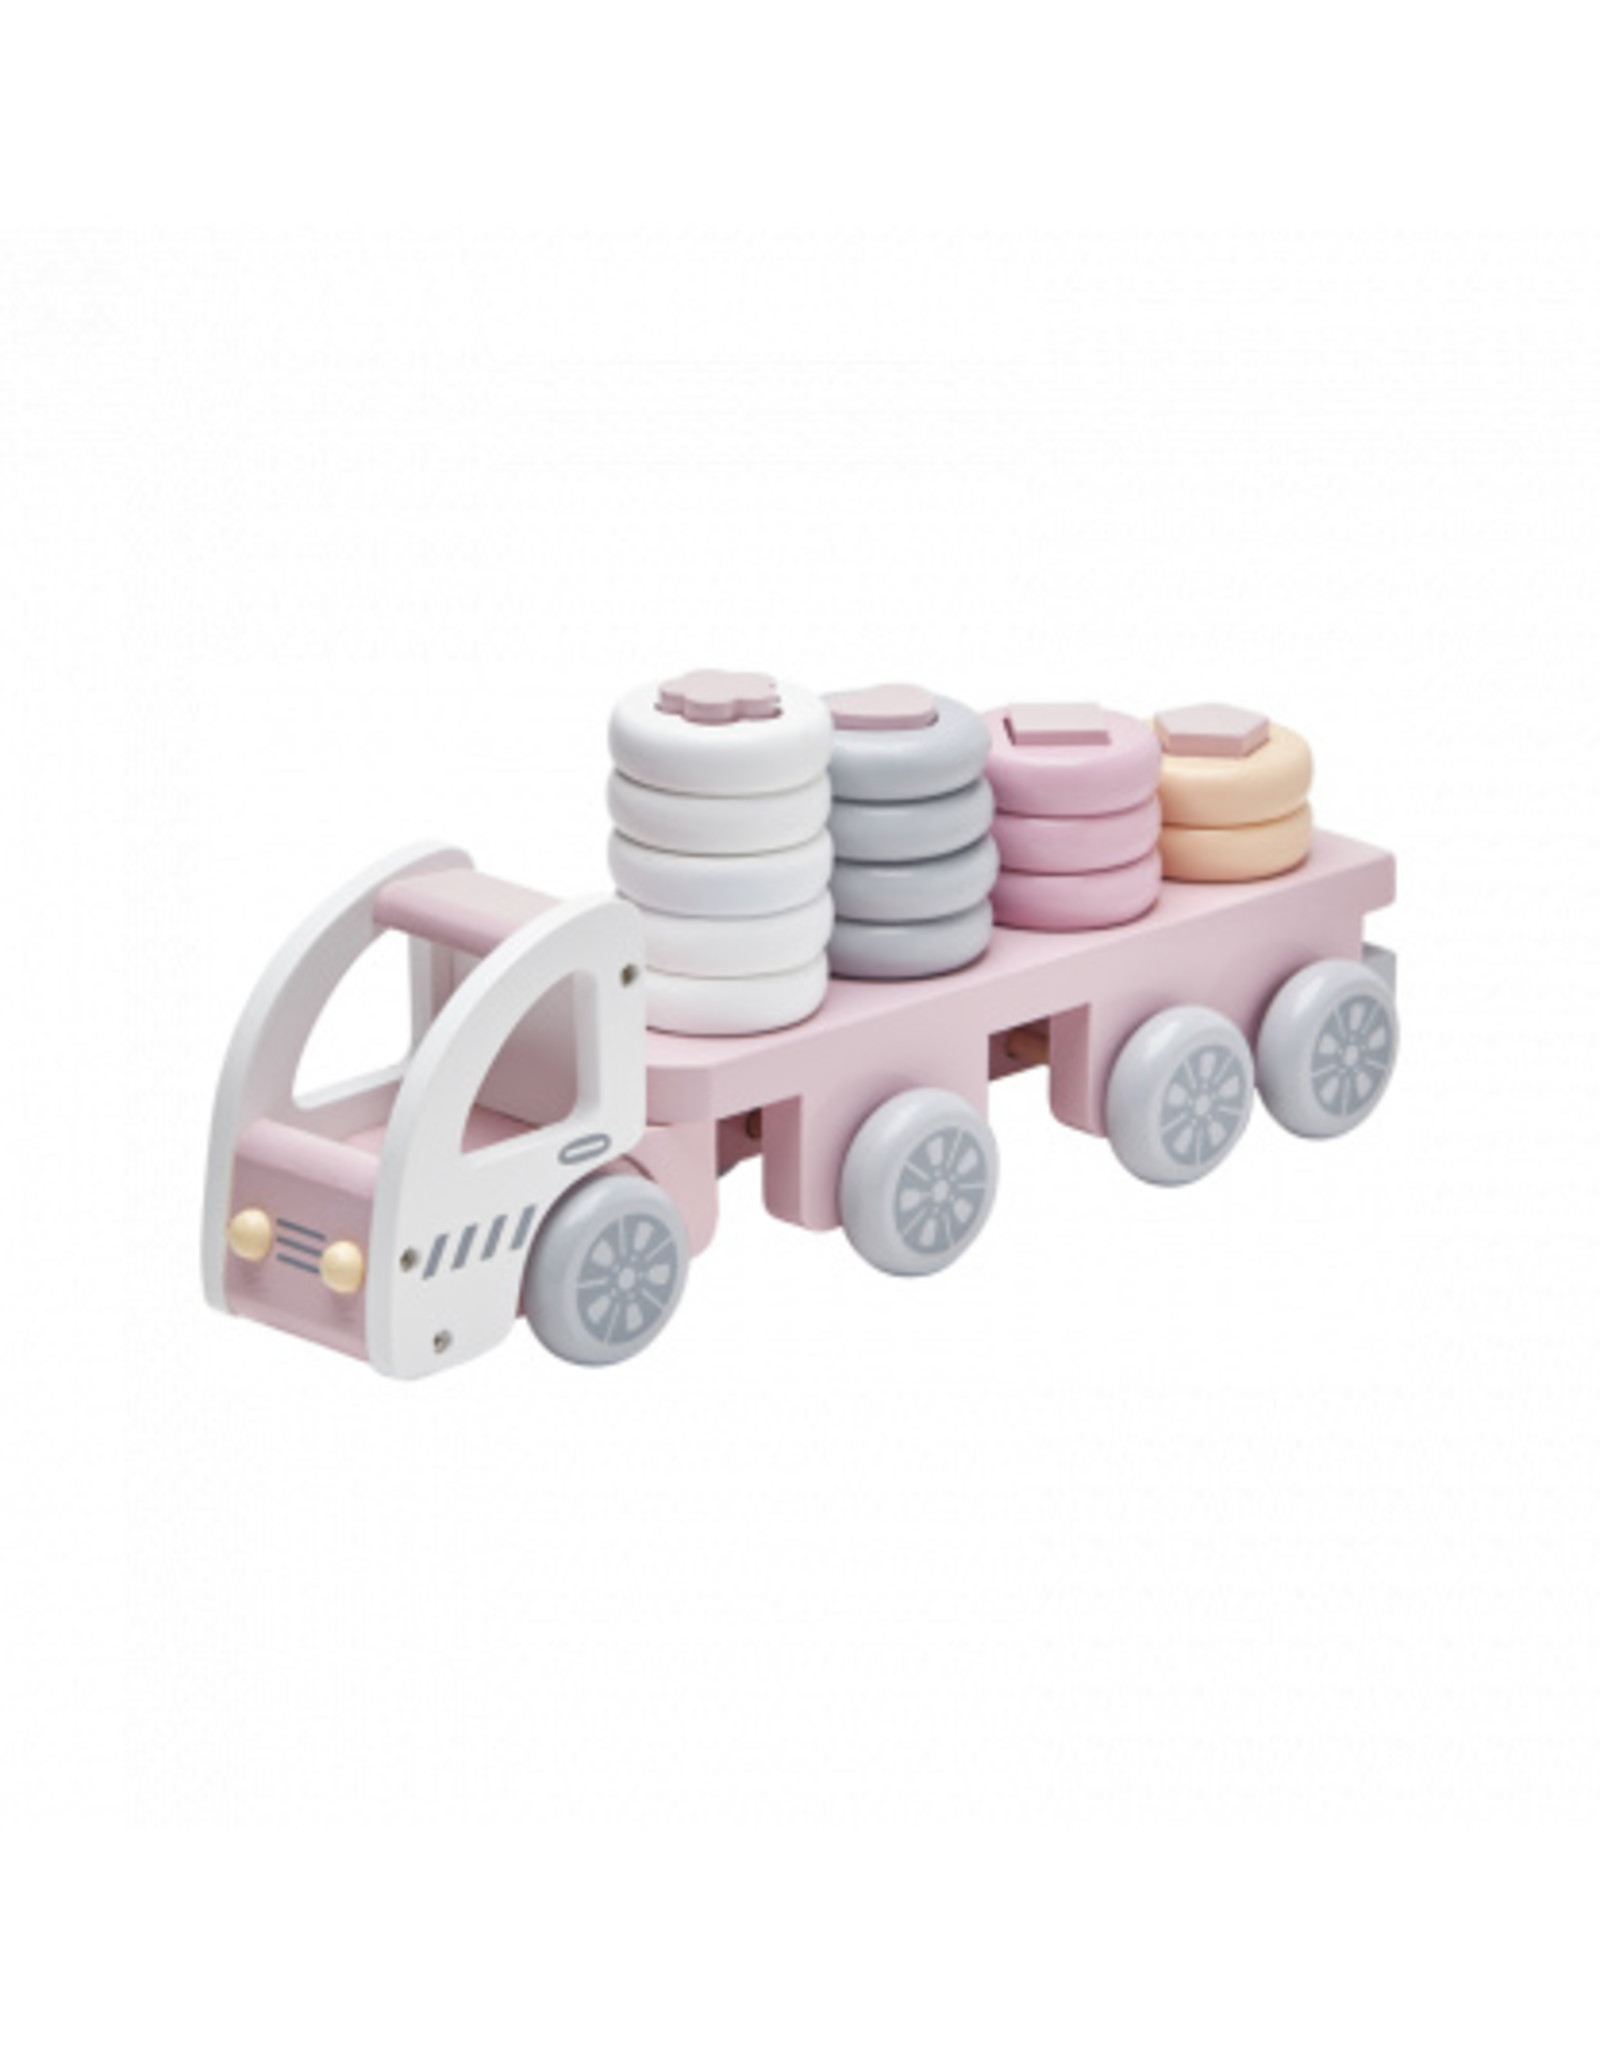 KIDS CONCEPT Pink Stacking Ring Truck